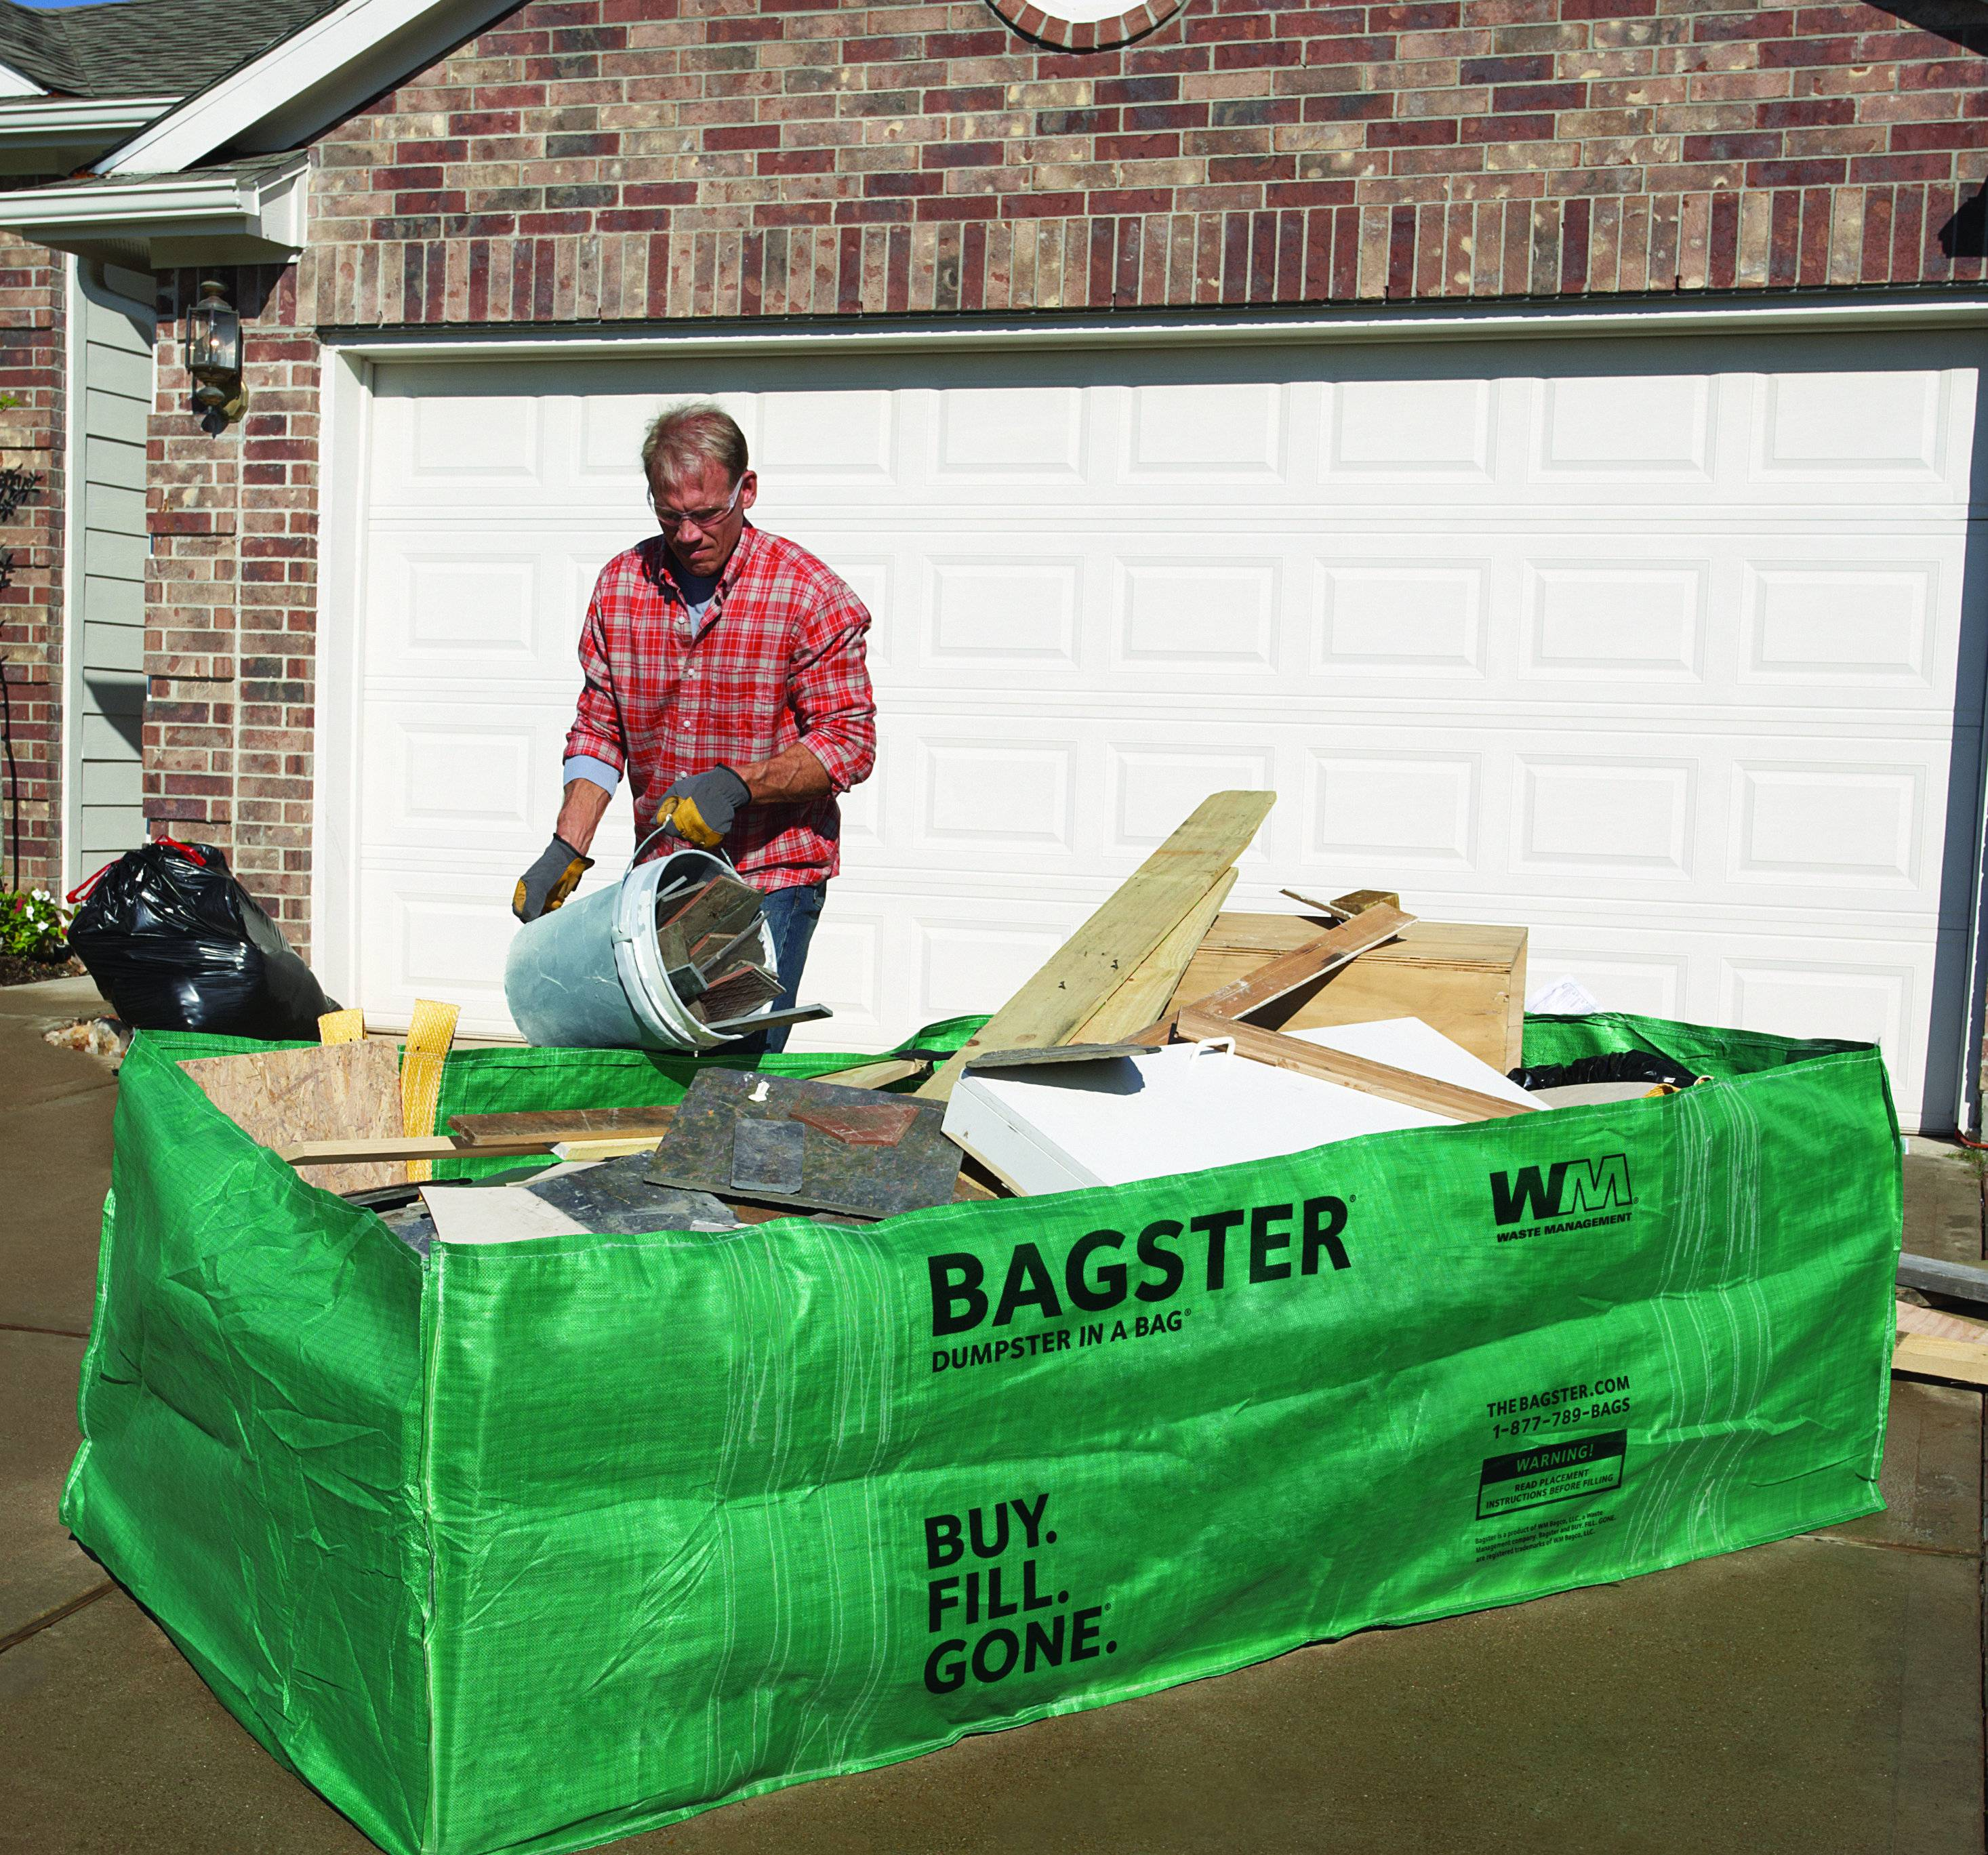 Bagster� is an easy-to-use disposal container that's a great alternative to large industrial waste boxes that will make Dad's cleanup work go away easier.